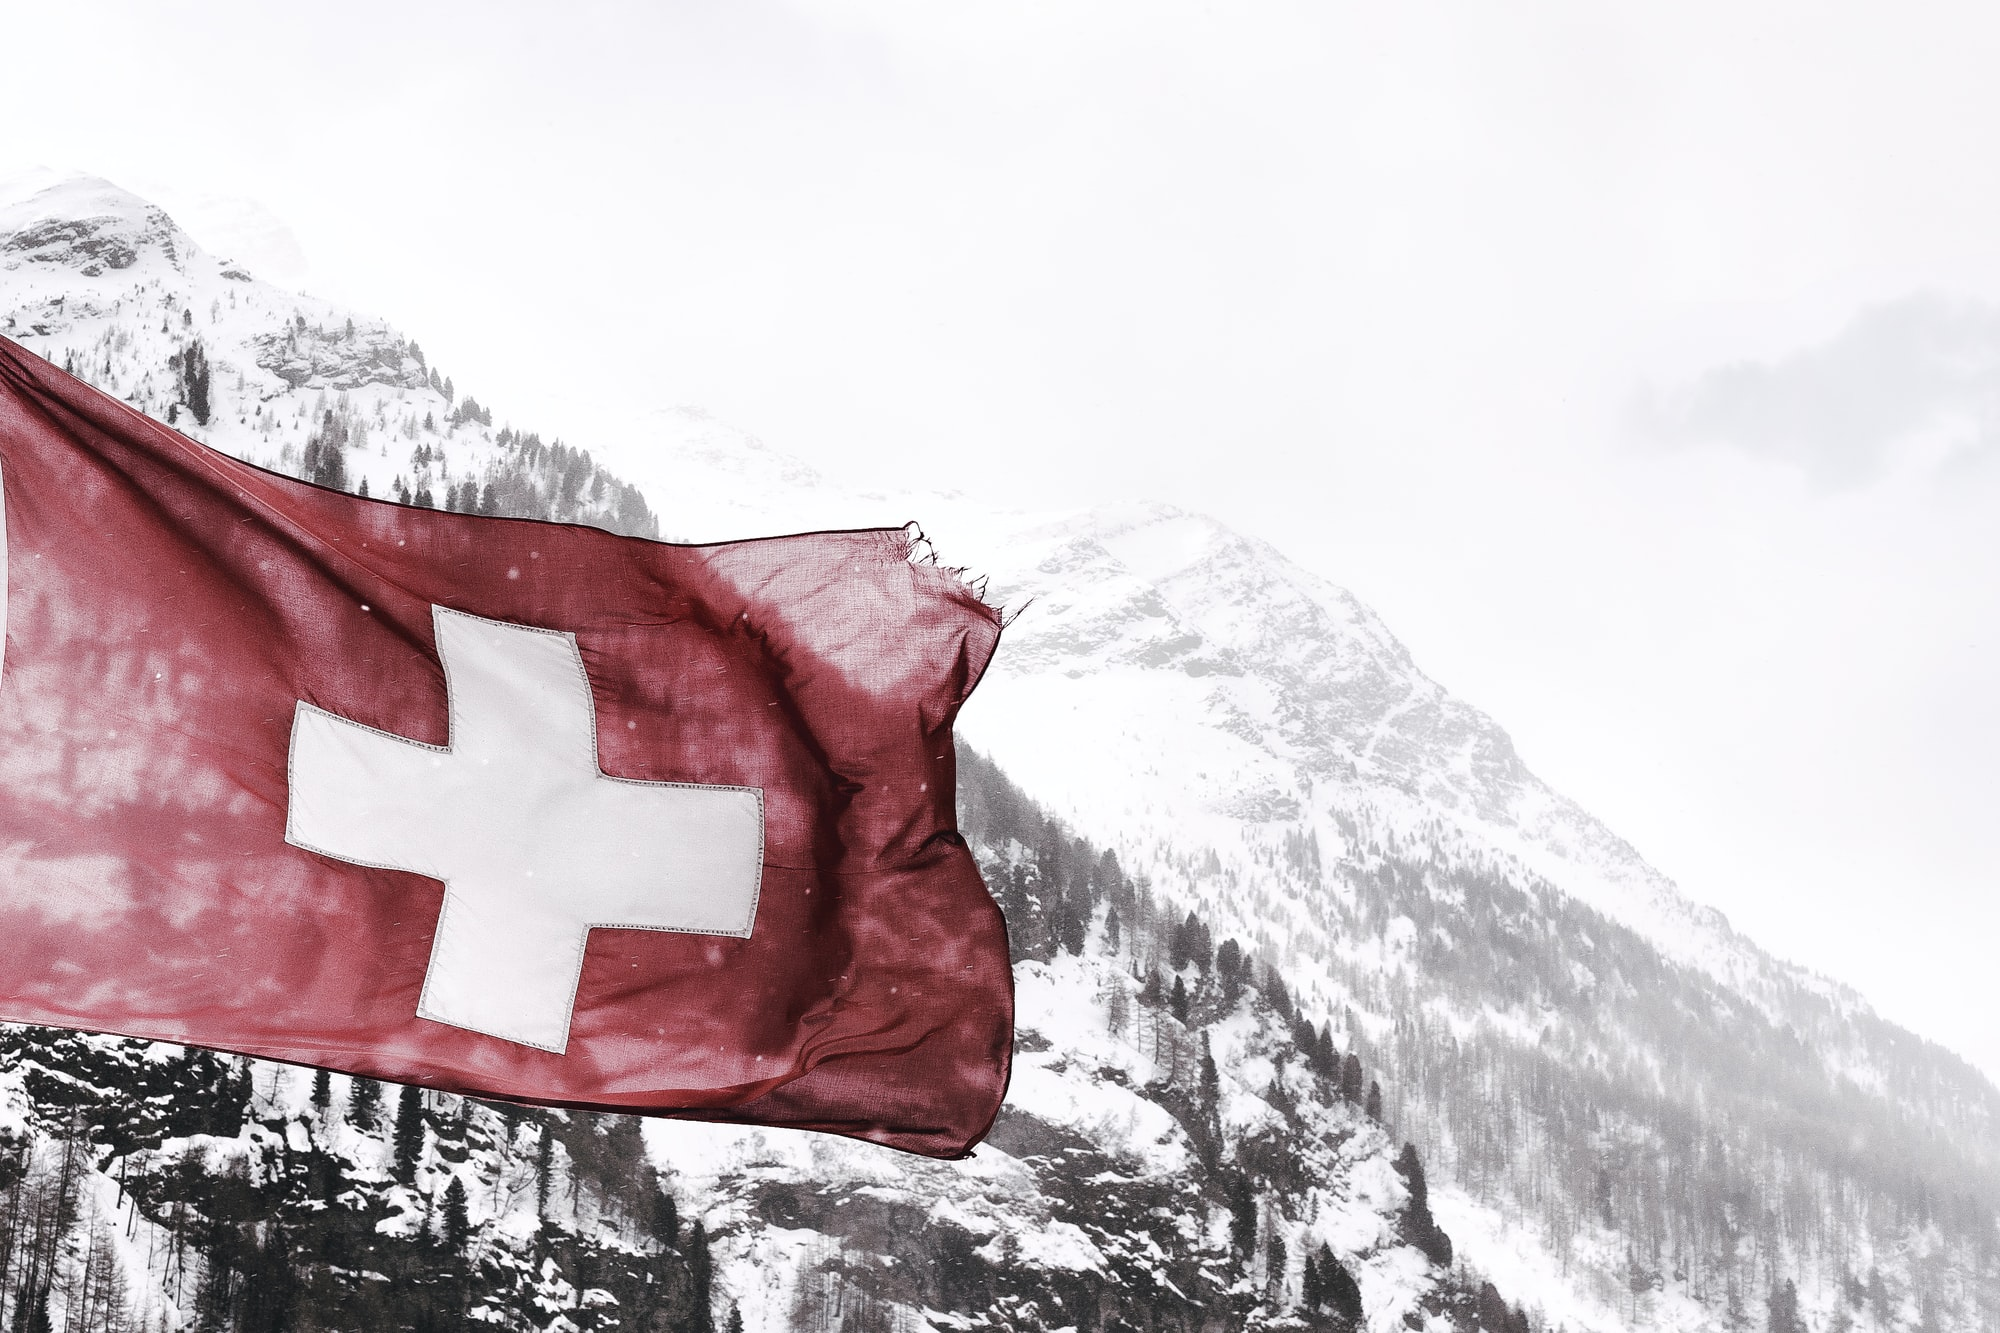 Of Switzerland and Contraceptives